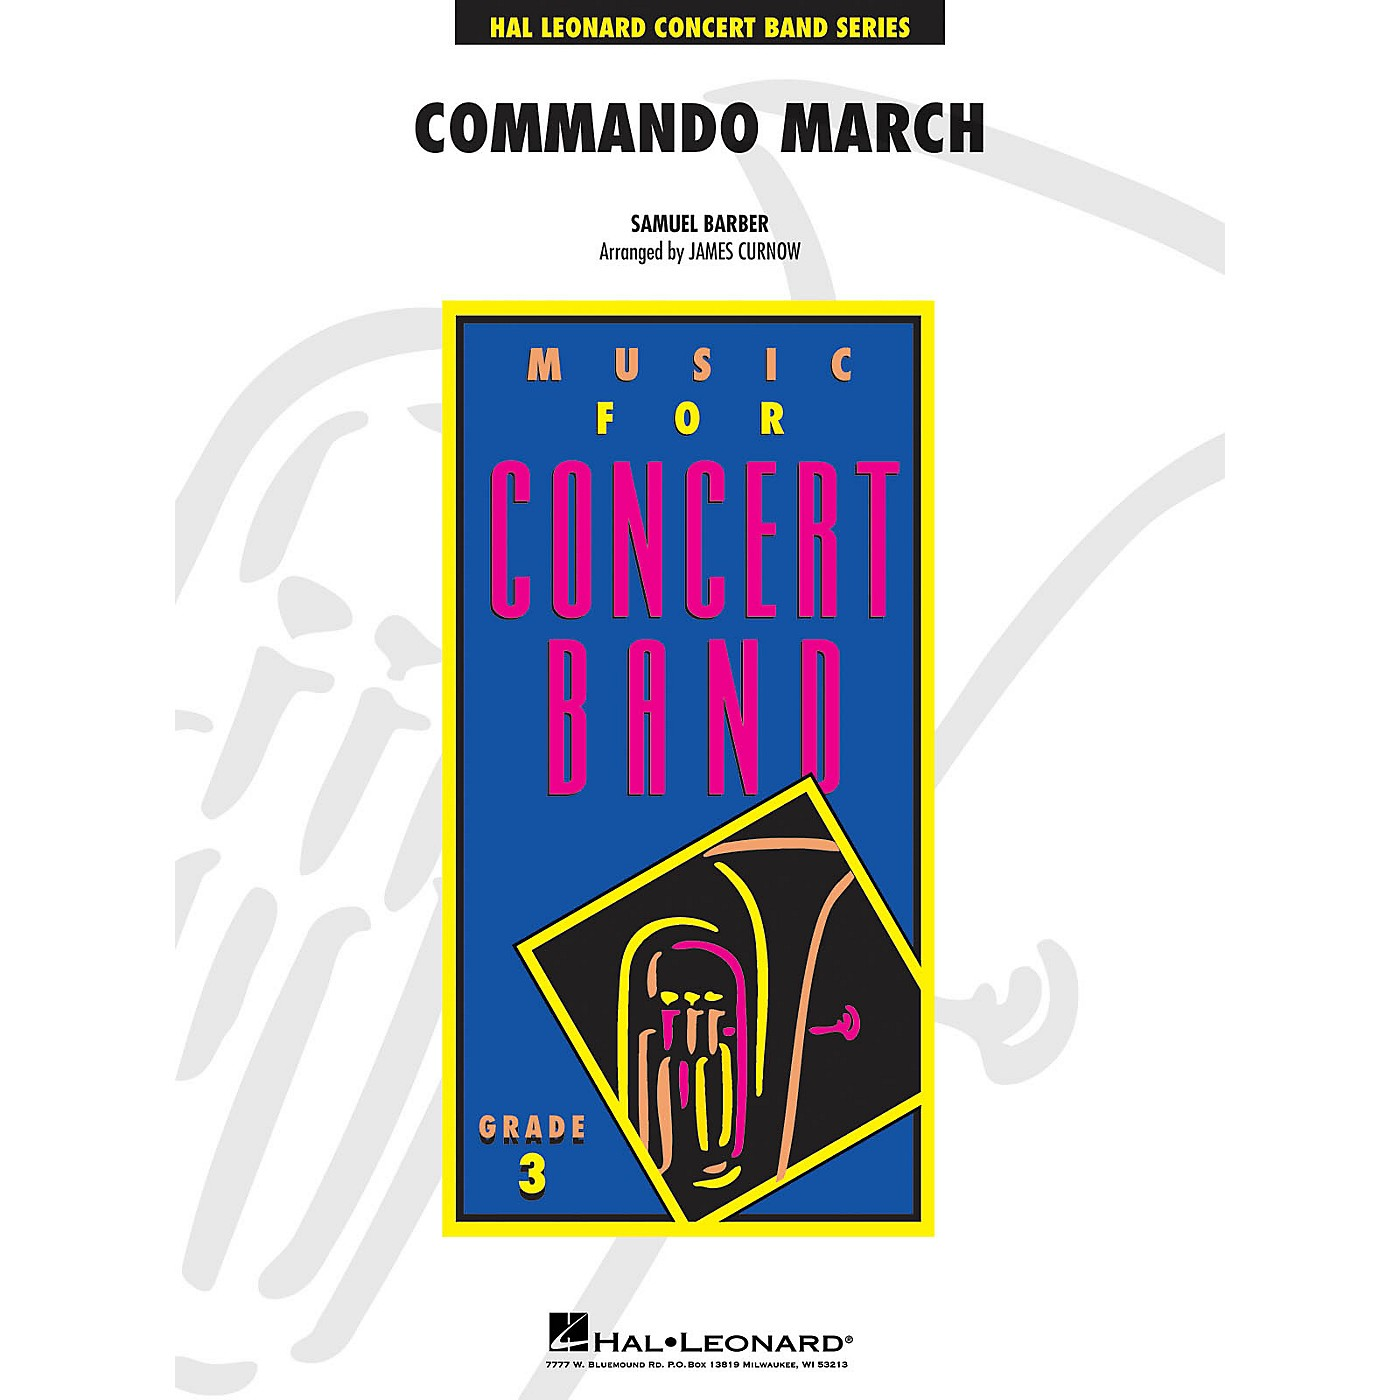 Hal Leonard Commando March - Young Concert Band Level 3 composed by Samuel Barber arranged by Curnow thumbnail